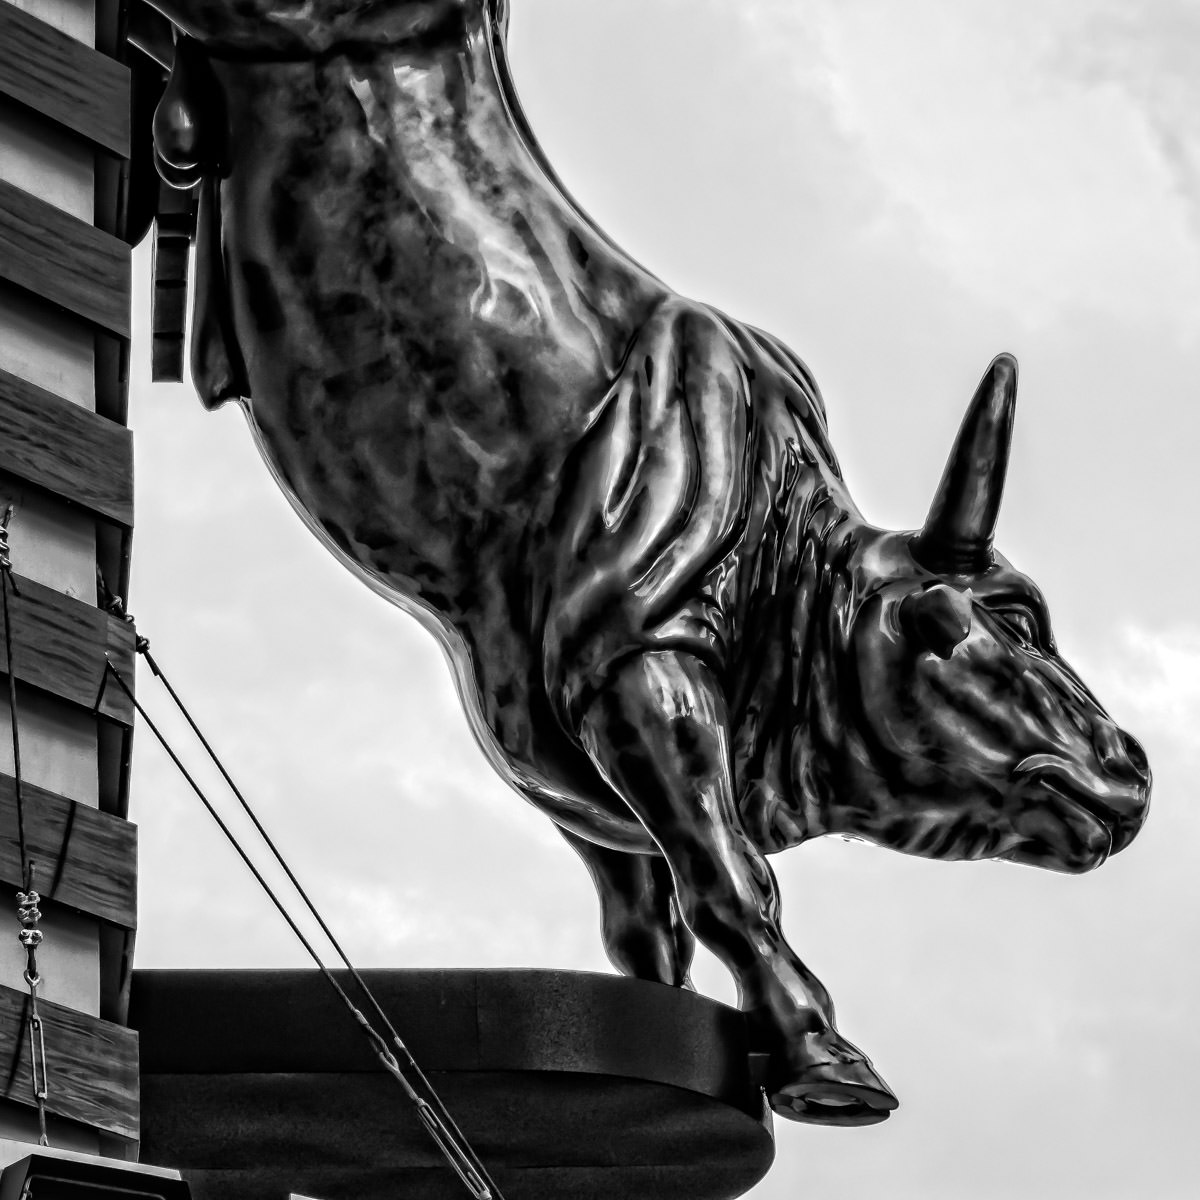 A statue of a bull on the outside of the PBR Rock Bar and Grill, Planet Hollywood Hotel and Casino, Las Vegas.